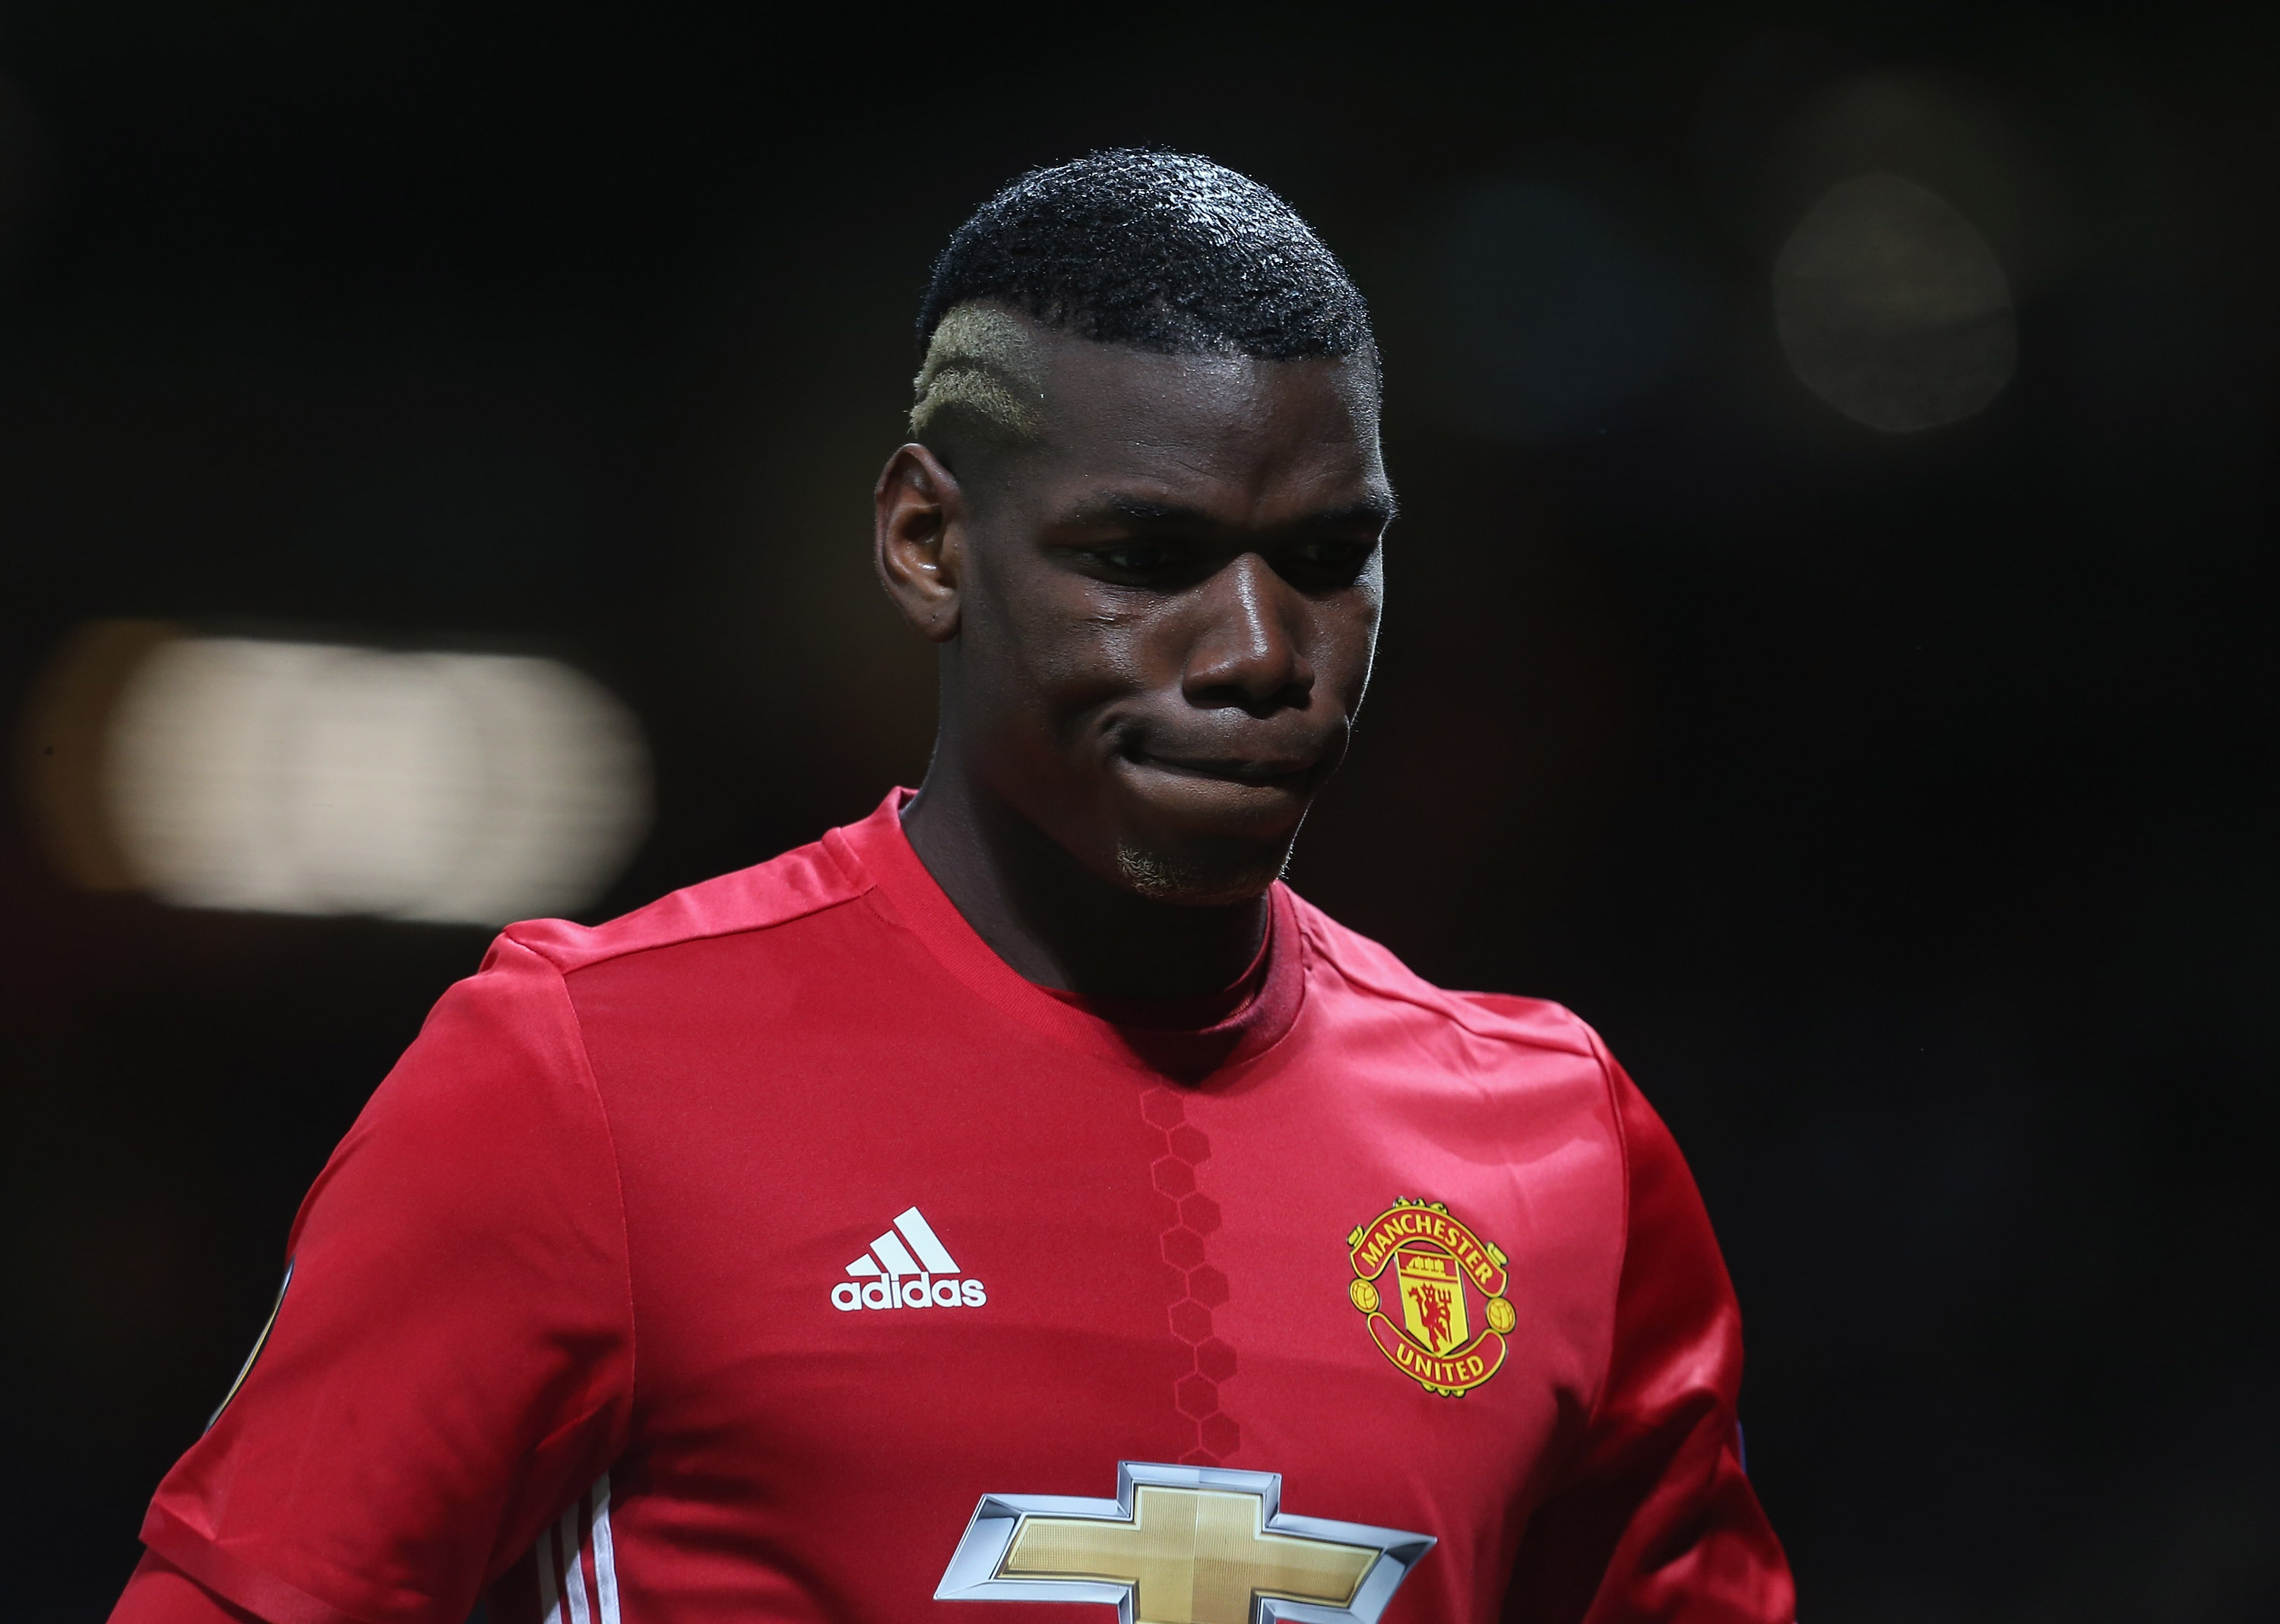 Paul Pogba can only disappoint Manchester United fans, says Nemanja Vidic